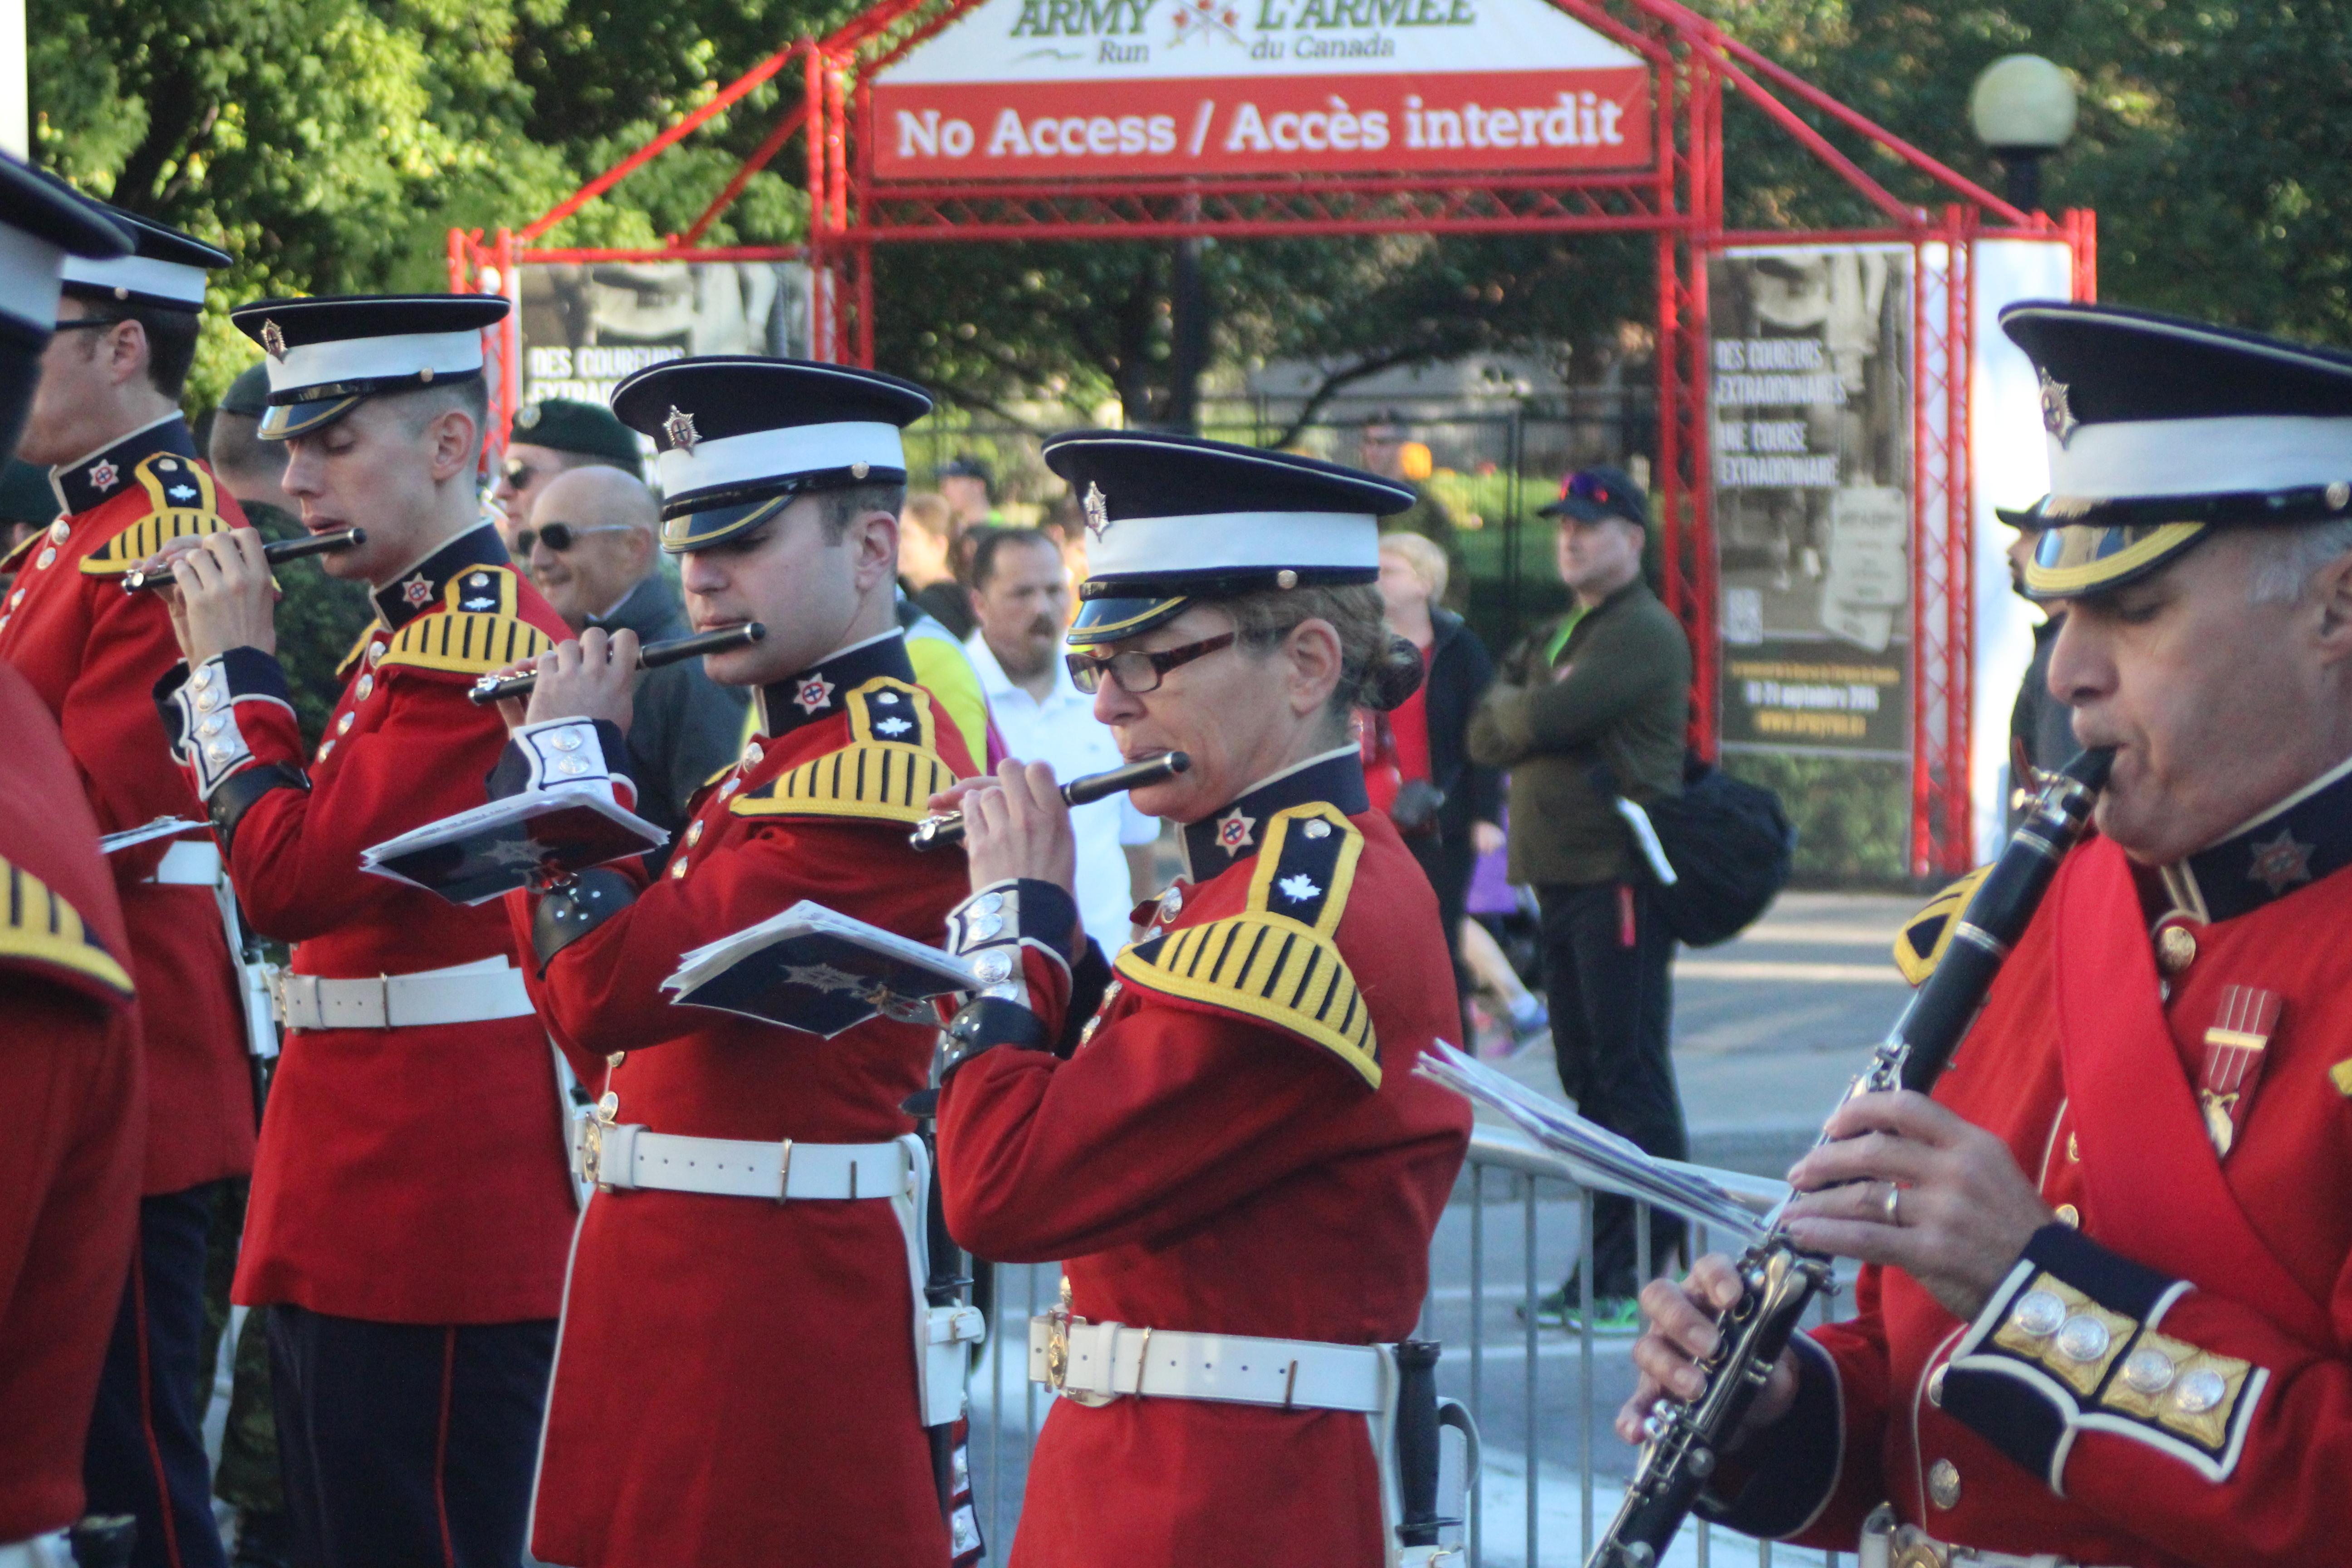 The governor general s foot guards - Then It S Back Along Sussex Drive To The Rideau Canal And The Finish Line Another Unique Feature Of The Event Is The Finisher Medals Which Are Dog Tags